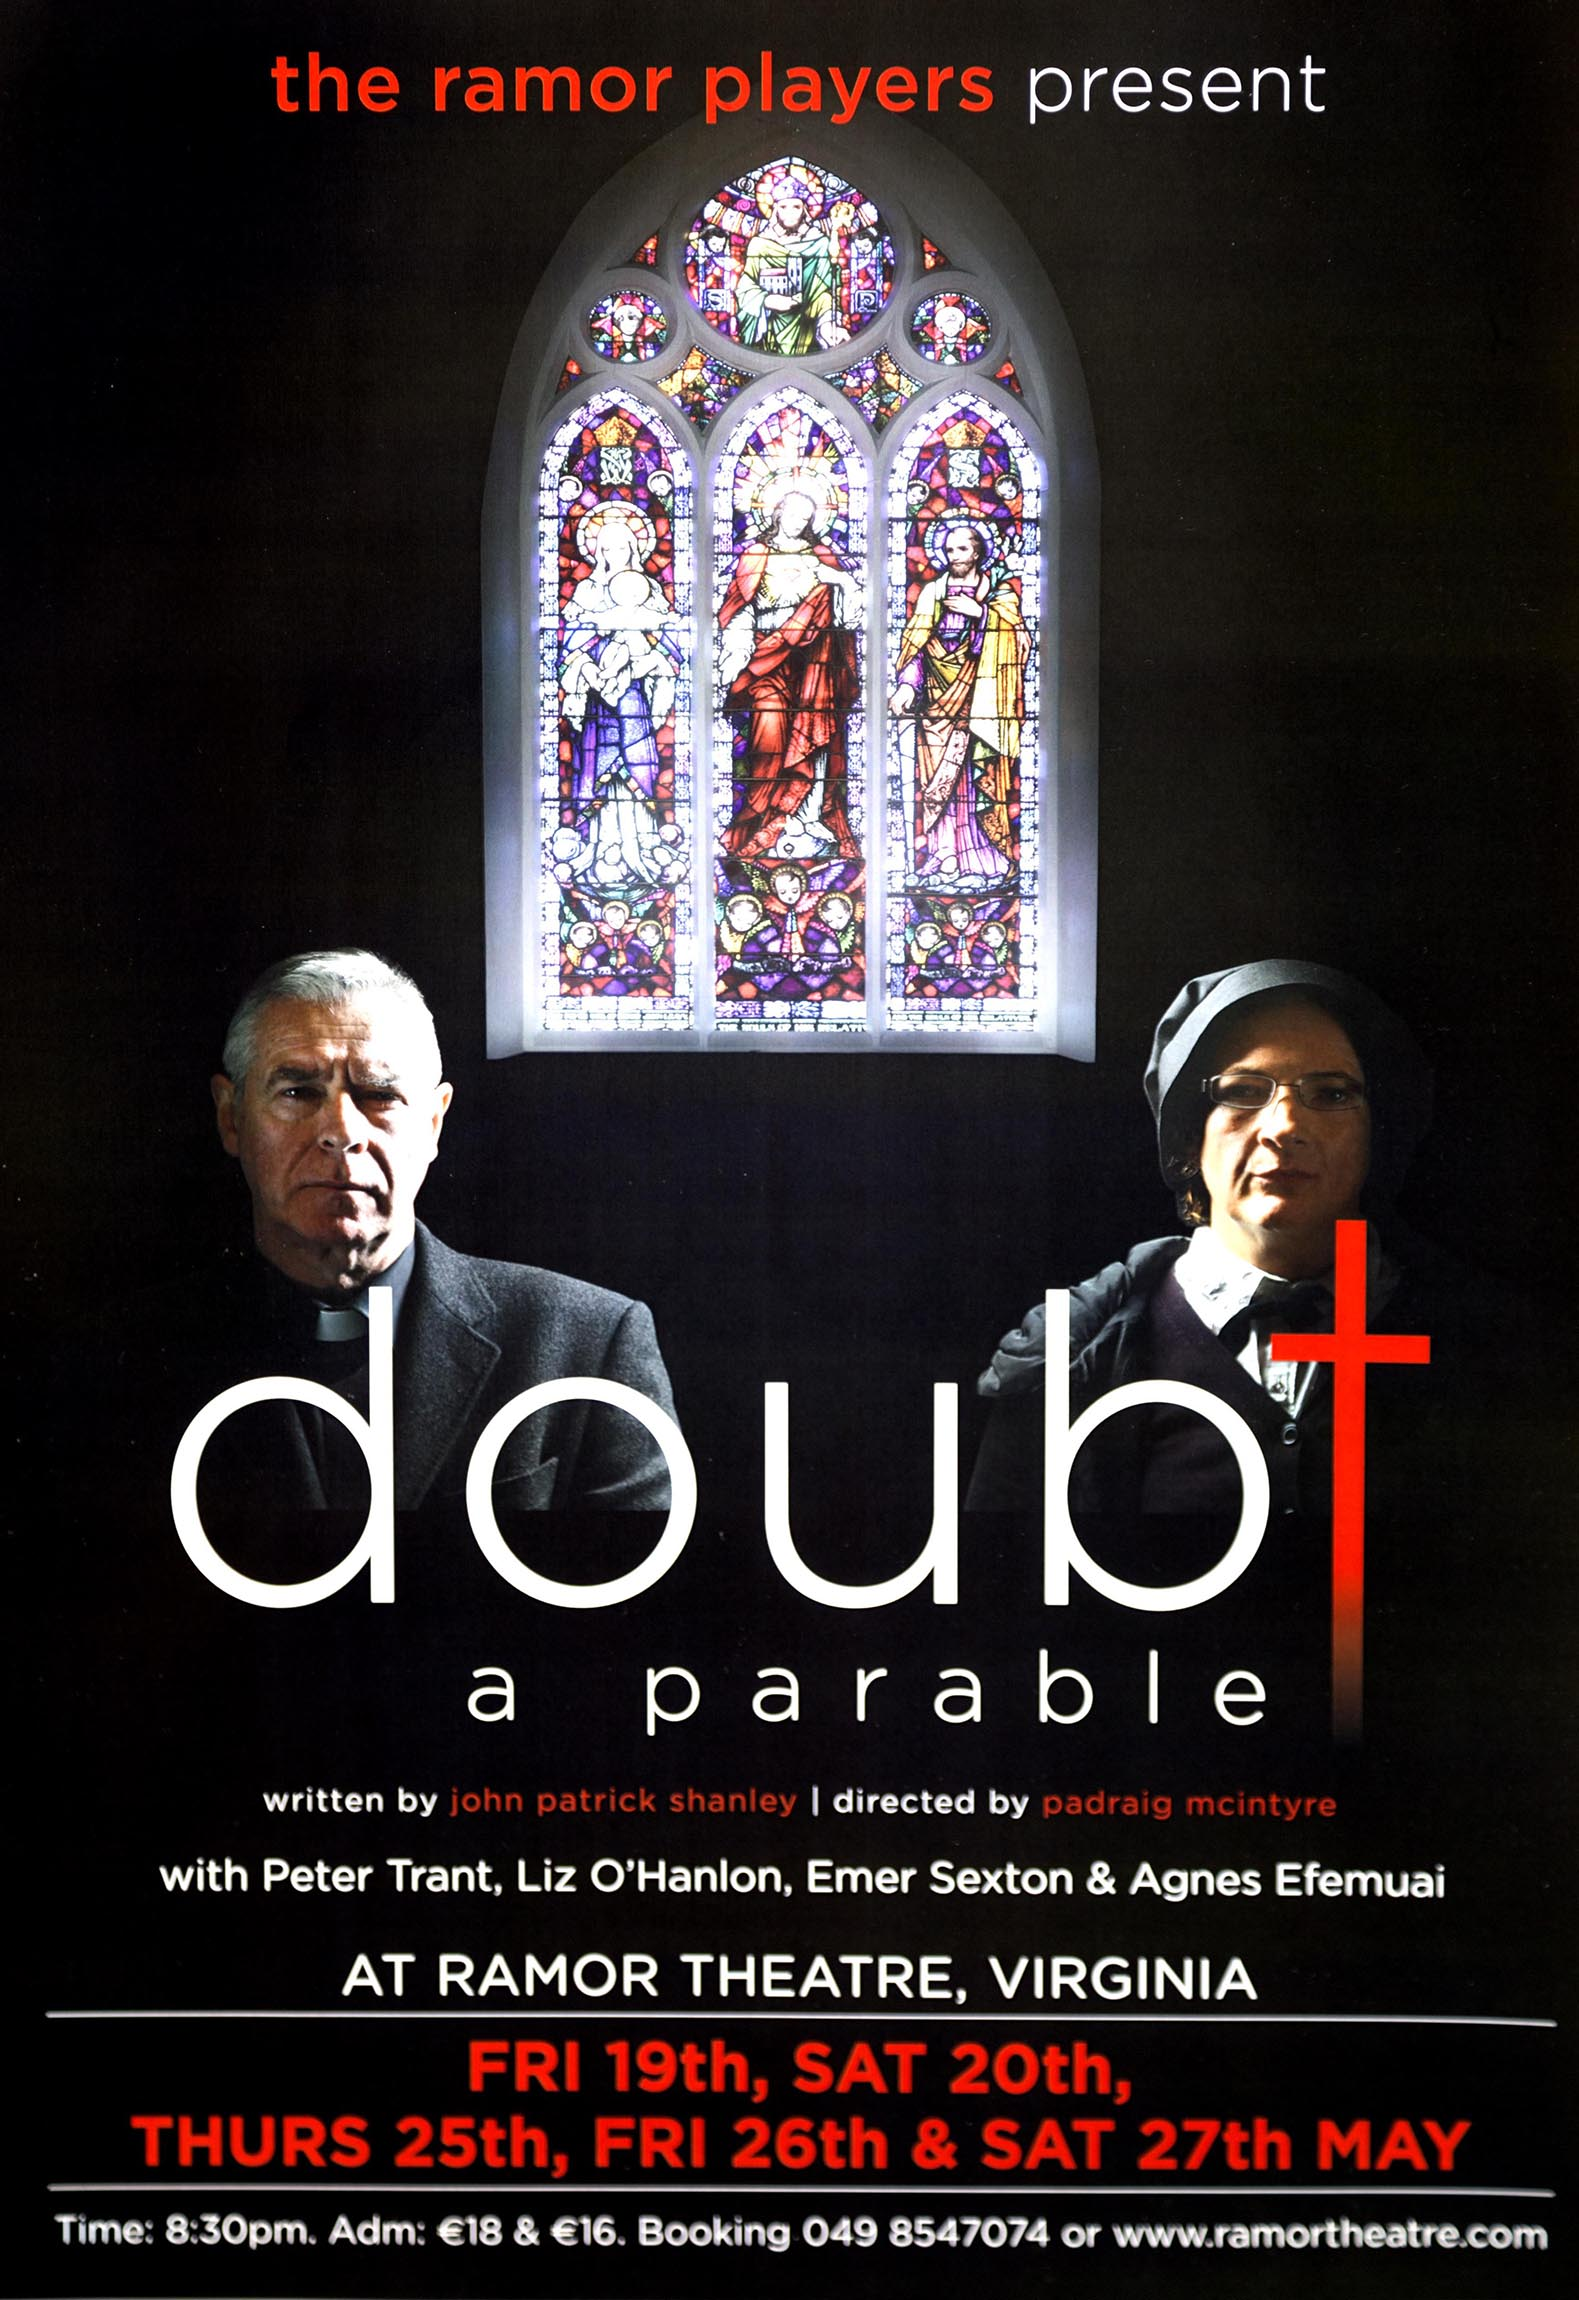 doubt by john patrick shanley The doubt: a parable community note includes chapter-by-chapter summary  and analysis, character list, theme list, historical context  by john patrick  shanley.